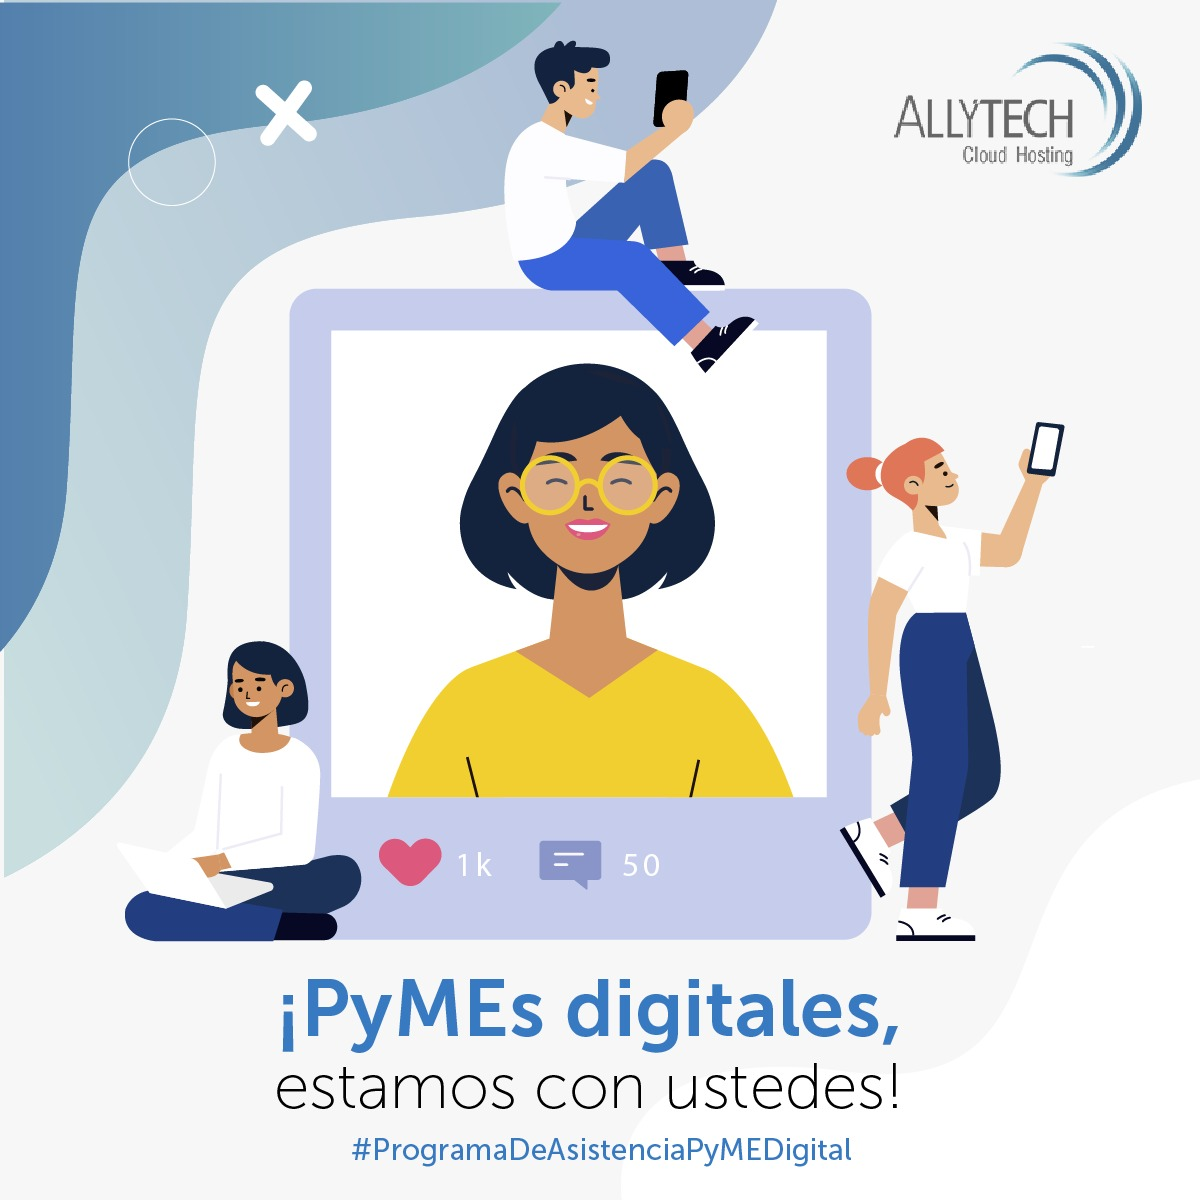 PyMEs digitales